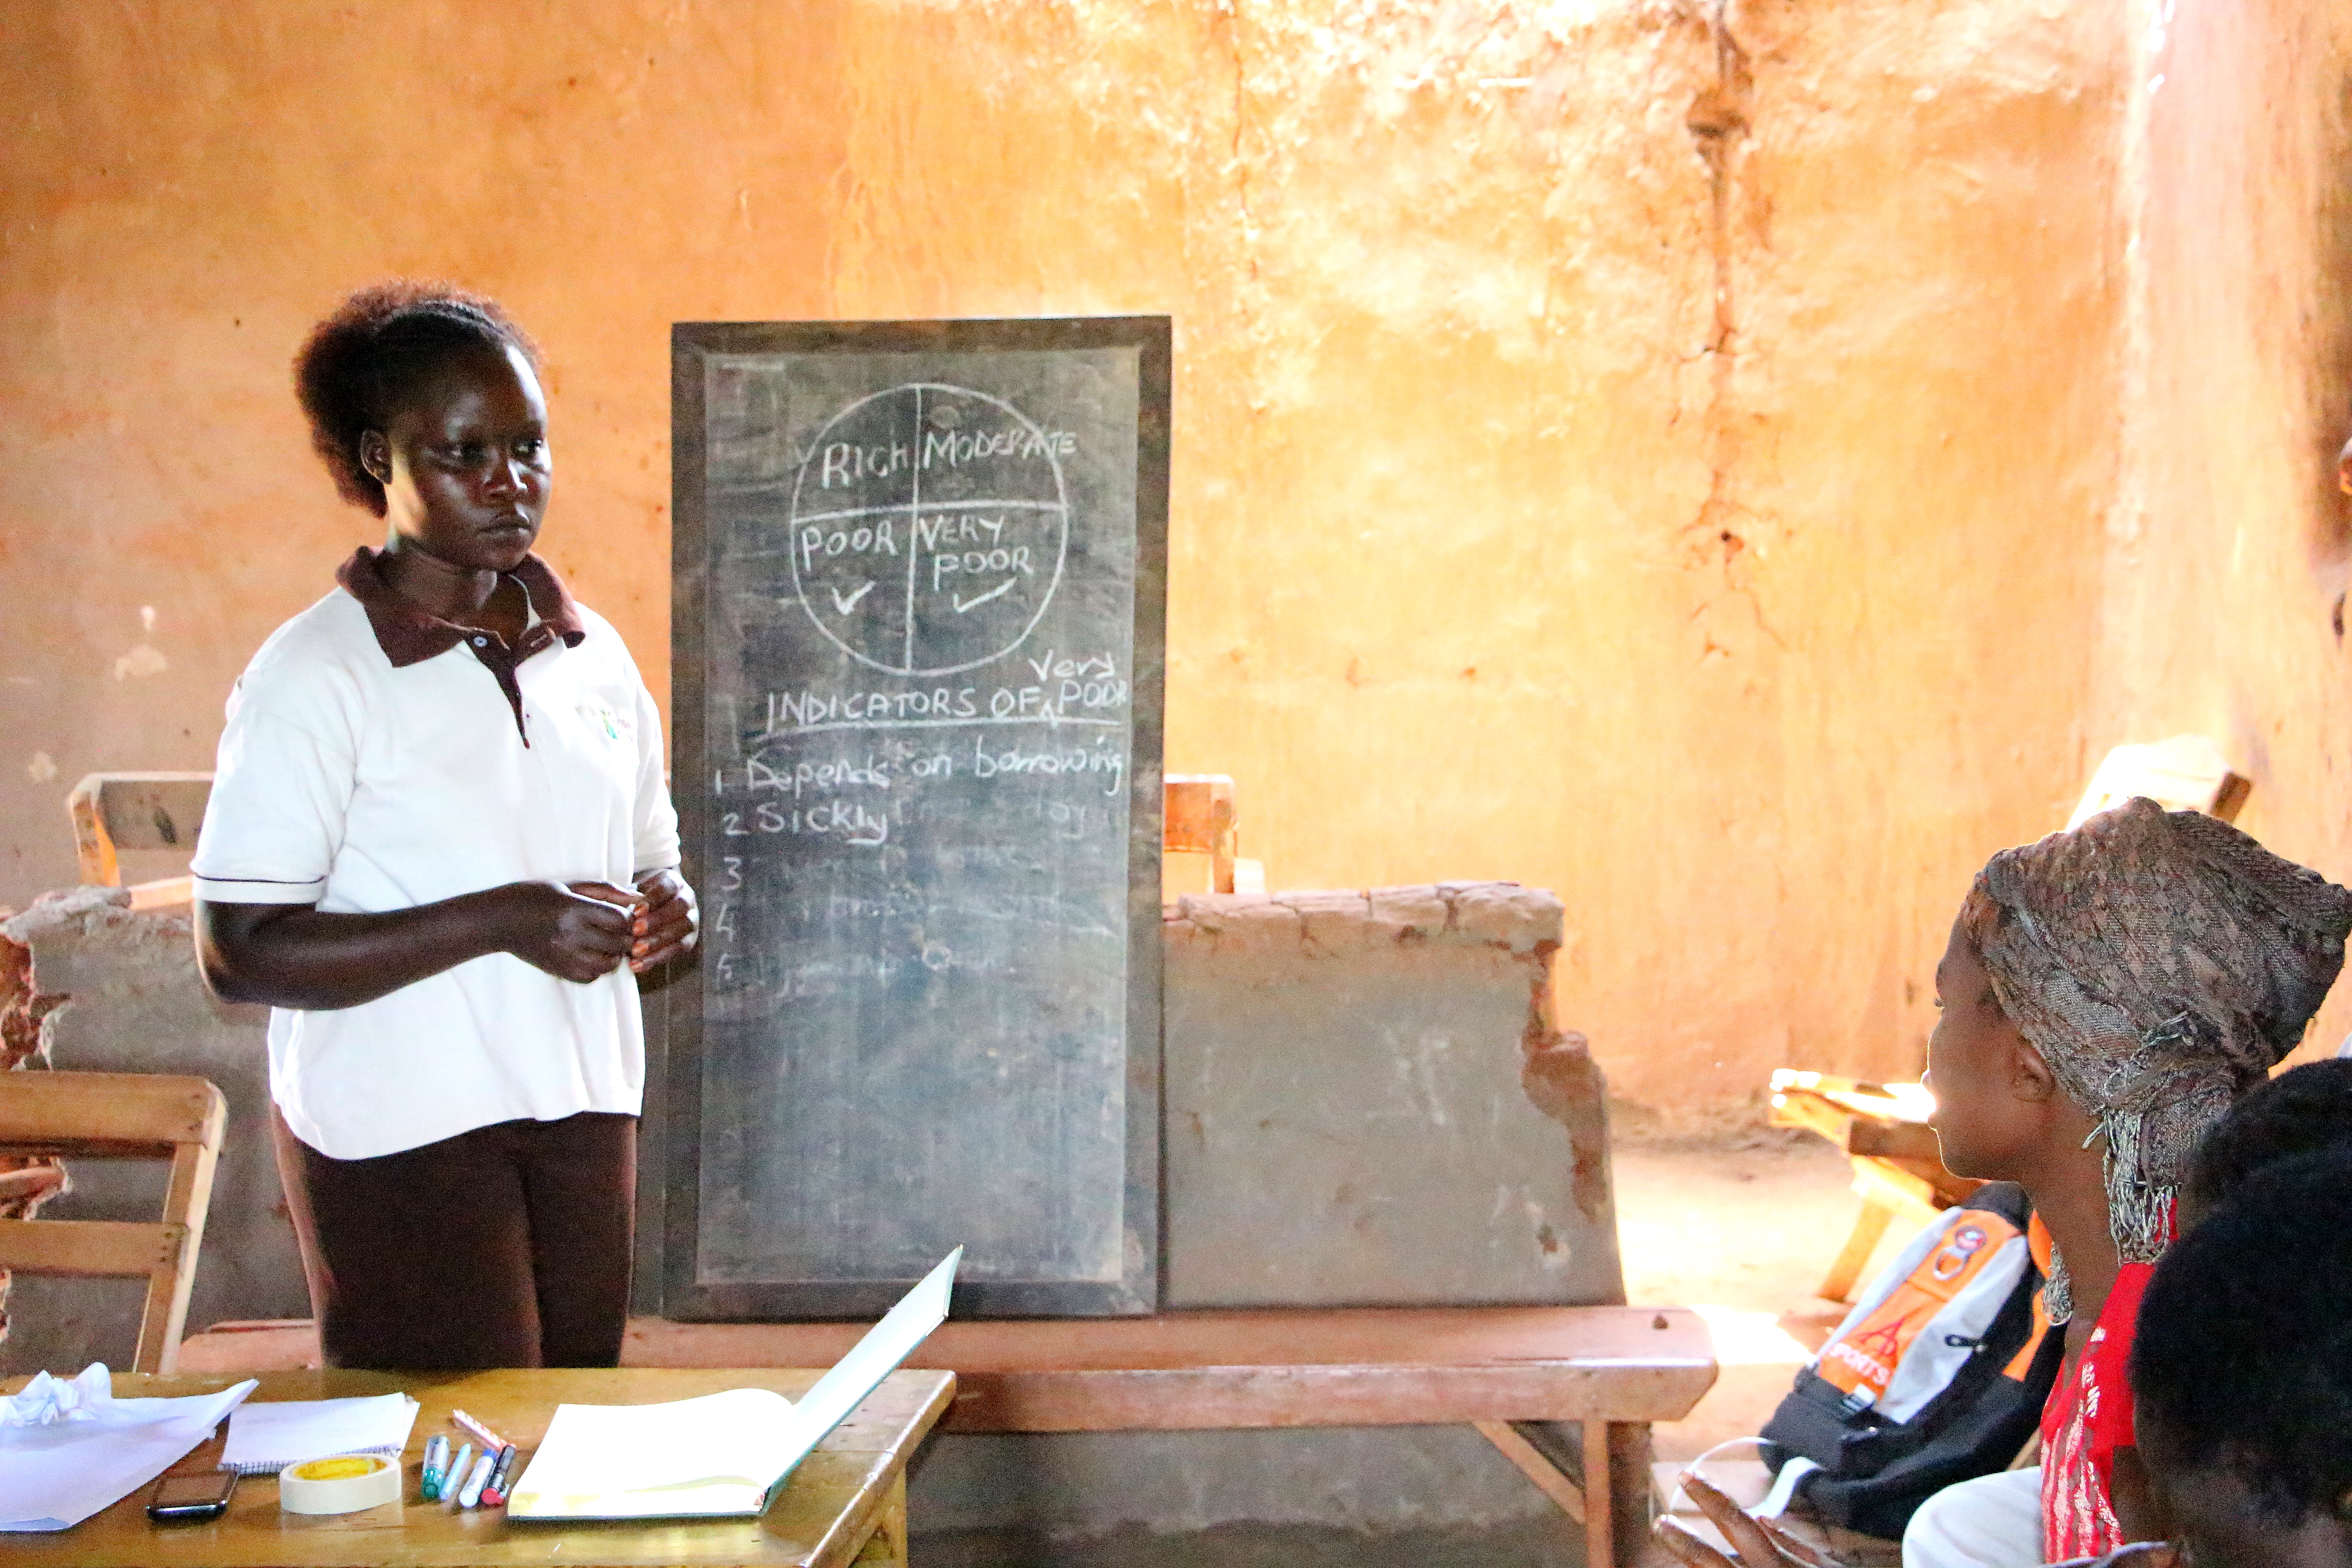 Marlene, a Village Enterprise business mentor, listens to an opinion leader explain an indicator of being very poor in Sibanga Village.